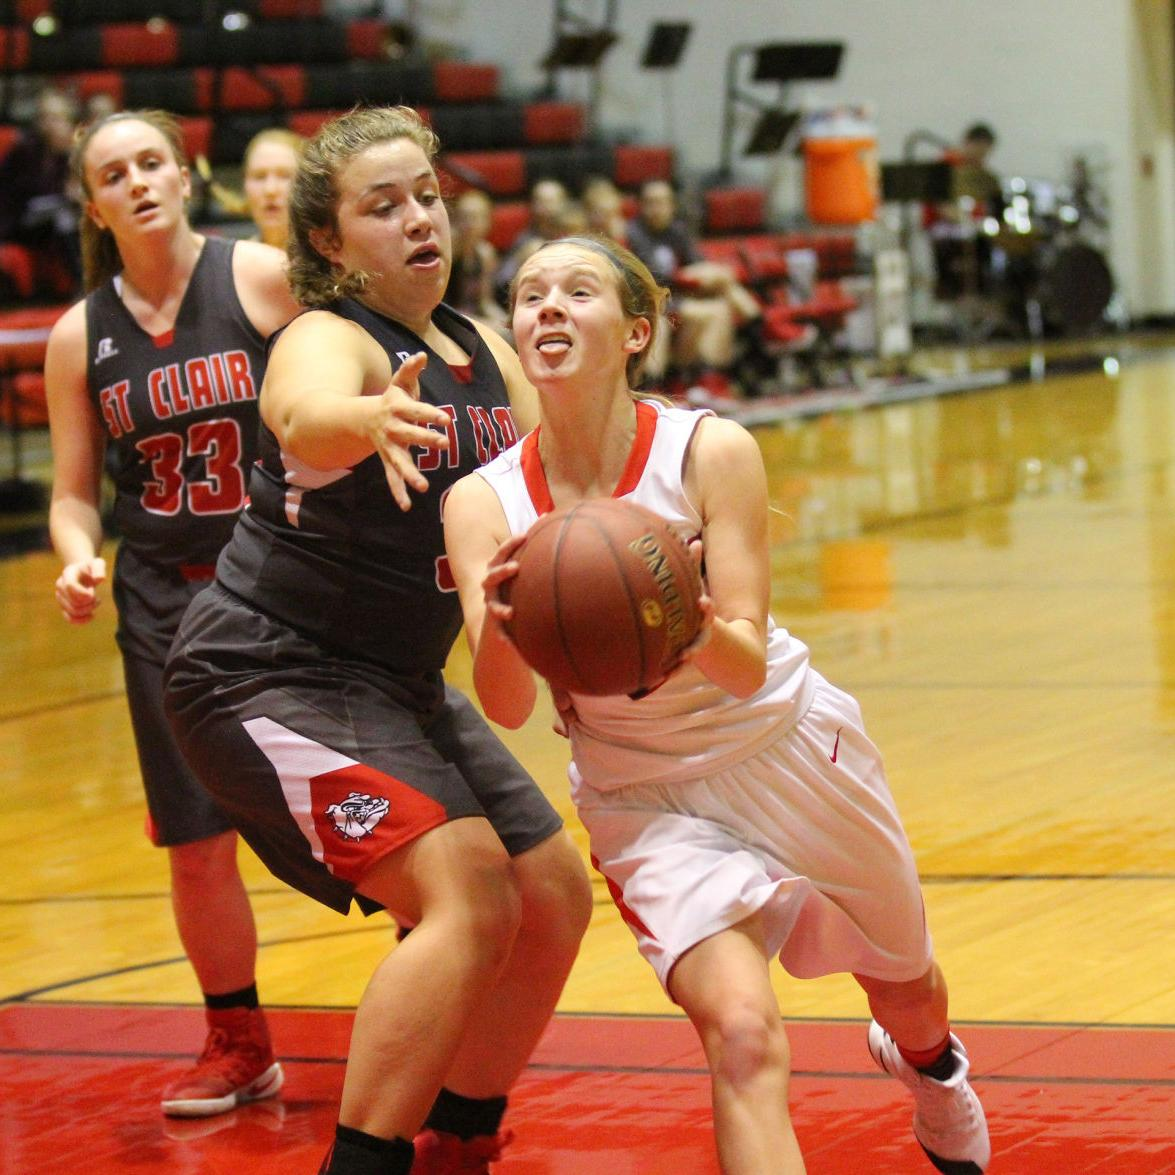 Girls Basketball — St. Clair at Union